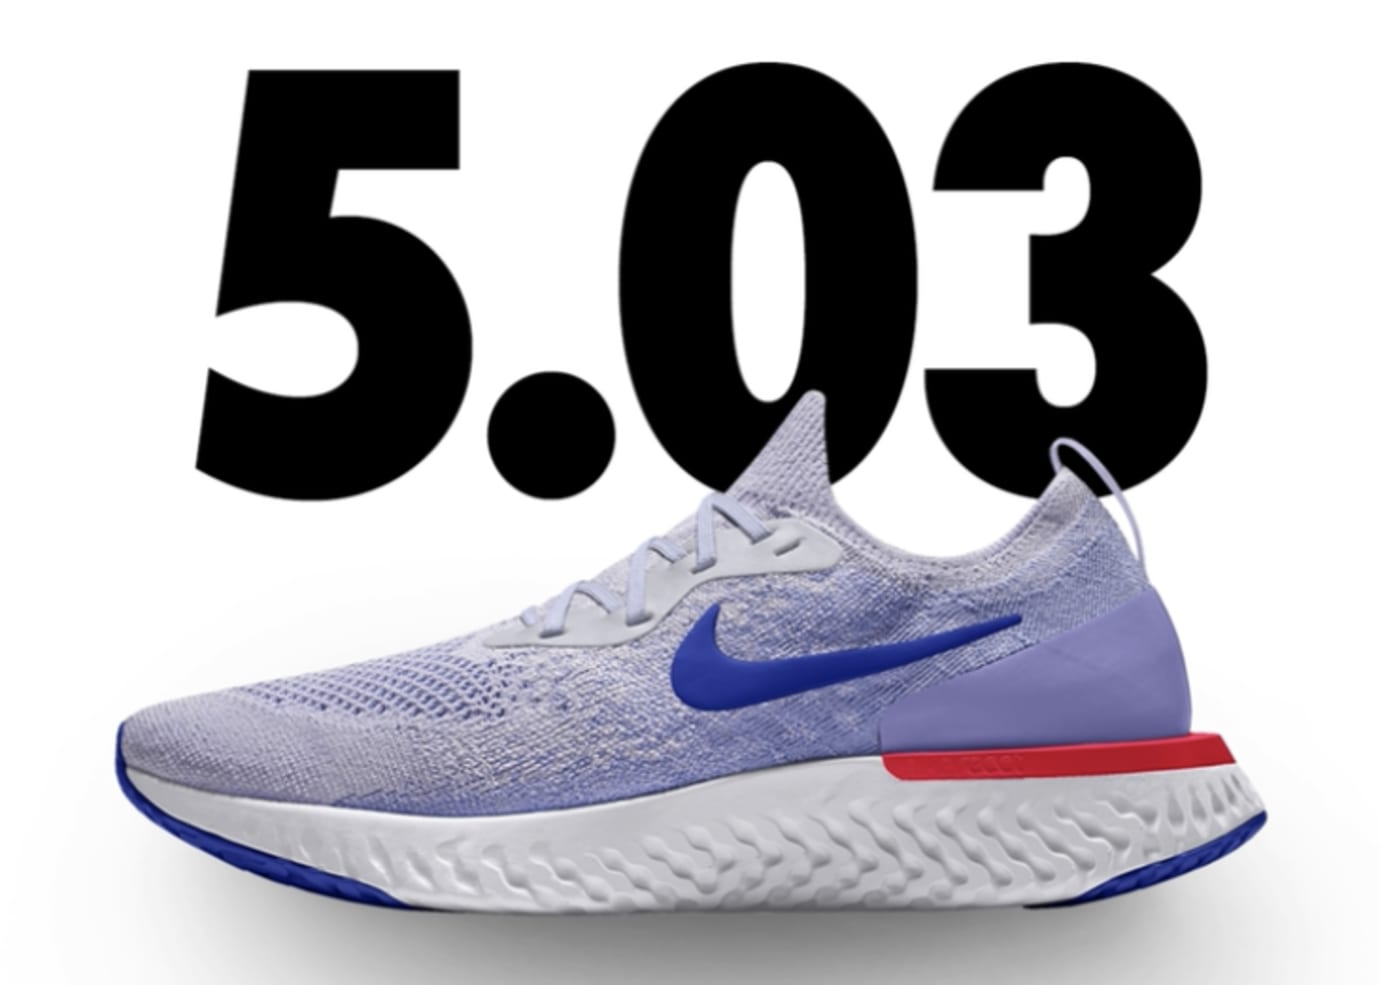 9ddd2ba3afe Nike Epic React Flyknit iD  Light Blue Red